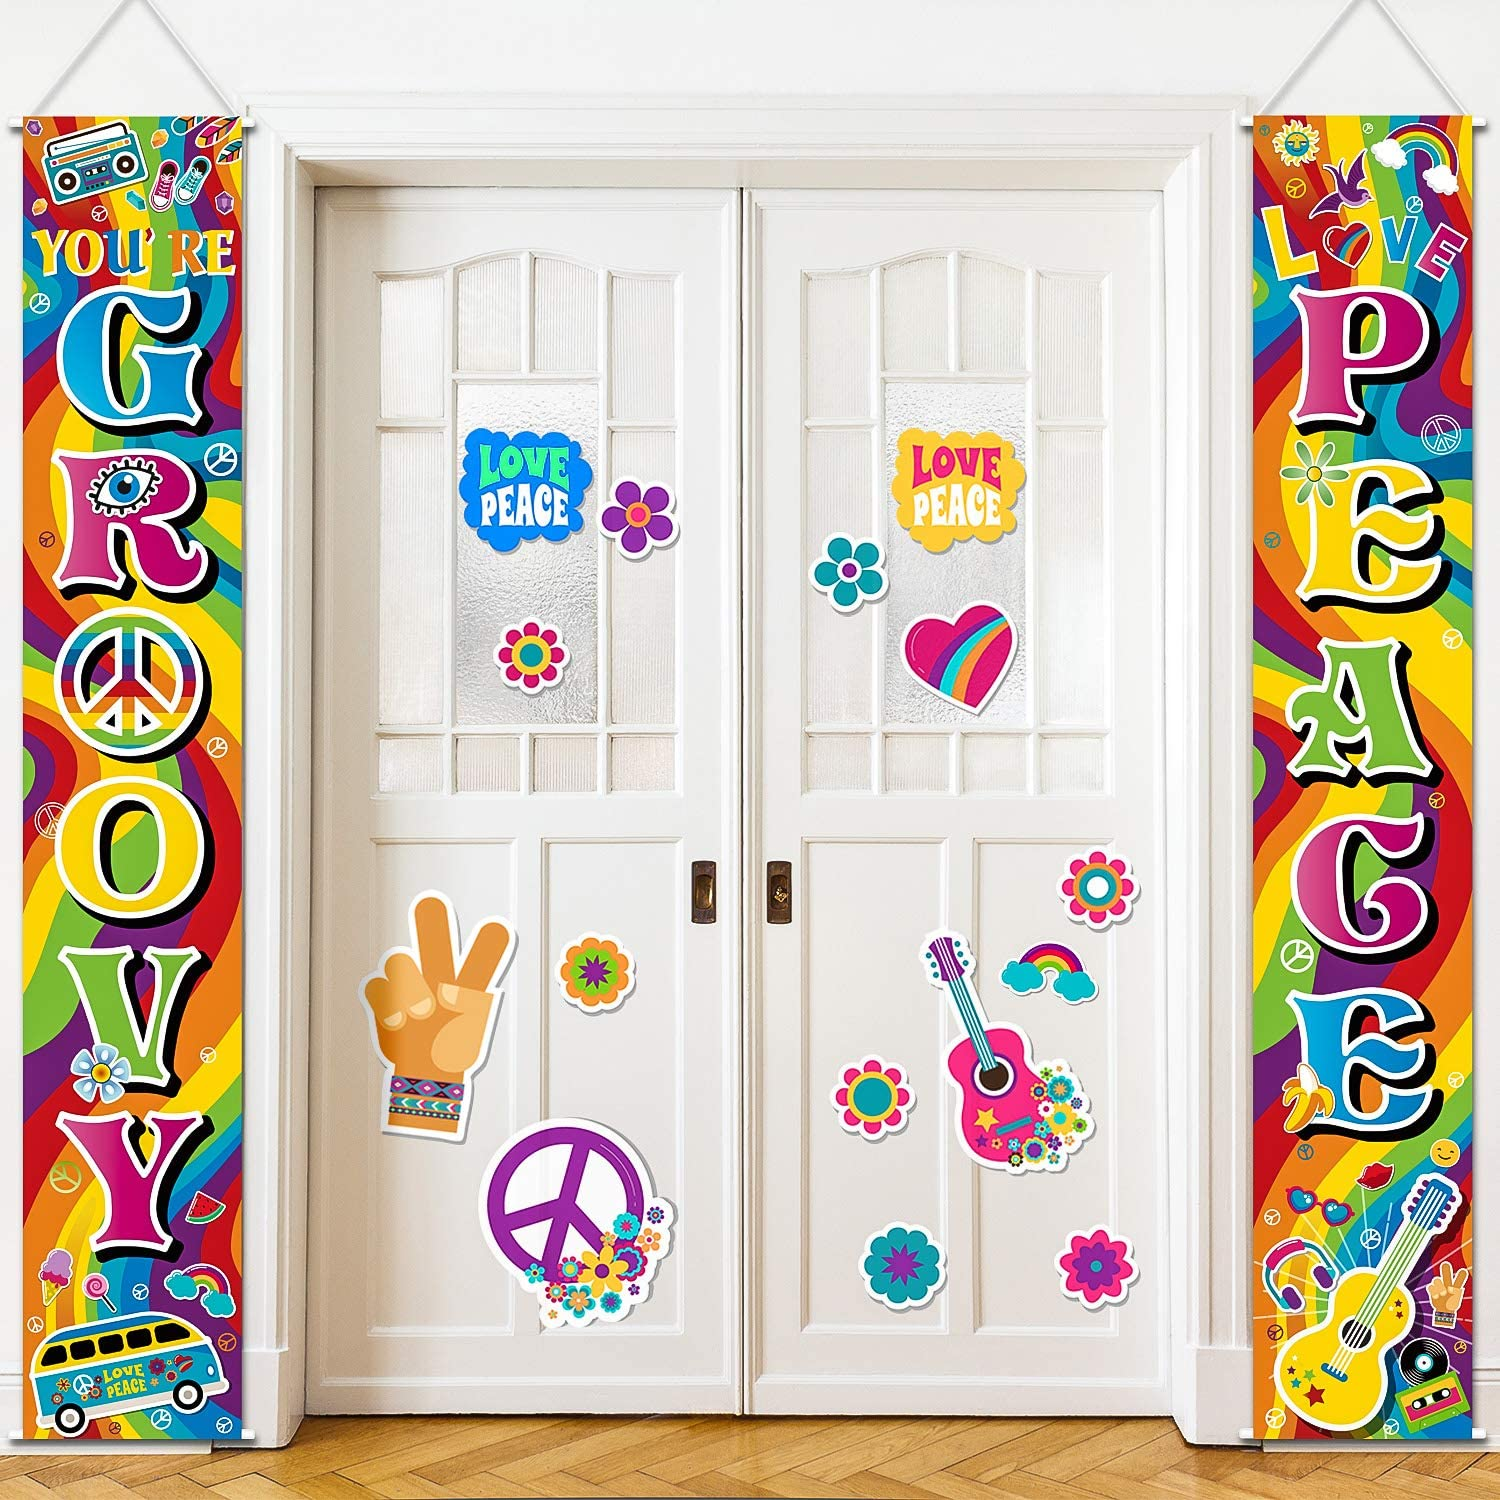 60's Party Scene Setters Hippie Wall Decoration, 60s Porch Sign Groovy Party Door Sign for 1980s Theme Party Rock Star Birthday Decoration Rainbow Backdrop Photo Props